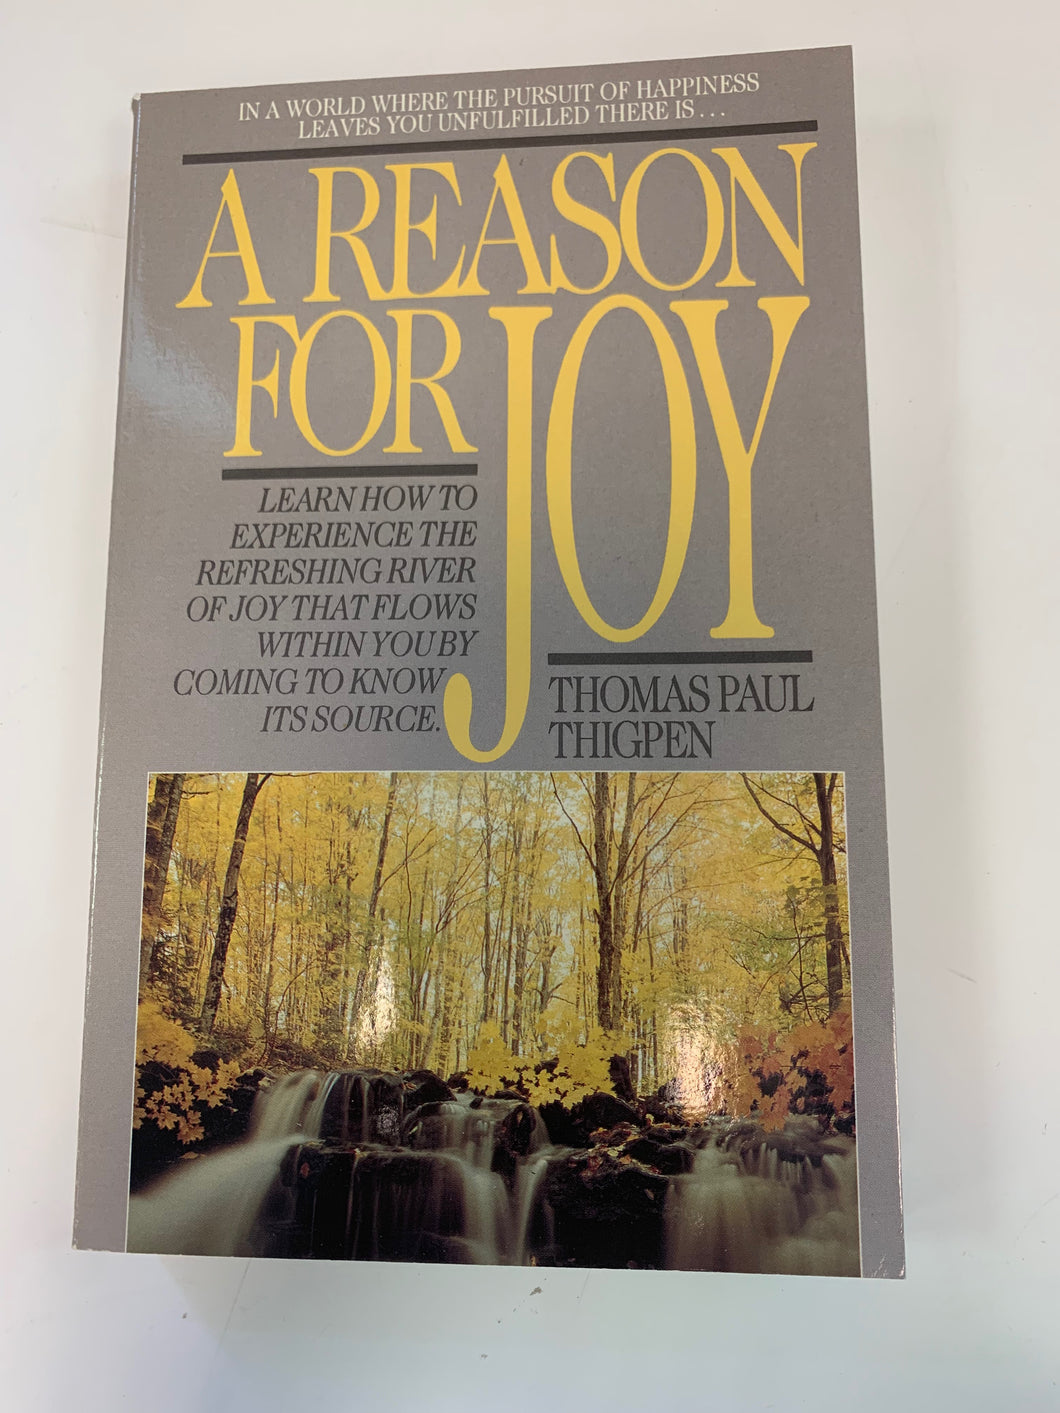 A Reason for Joy by Thomas Paul Thigpen